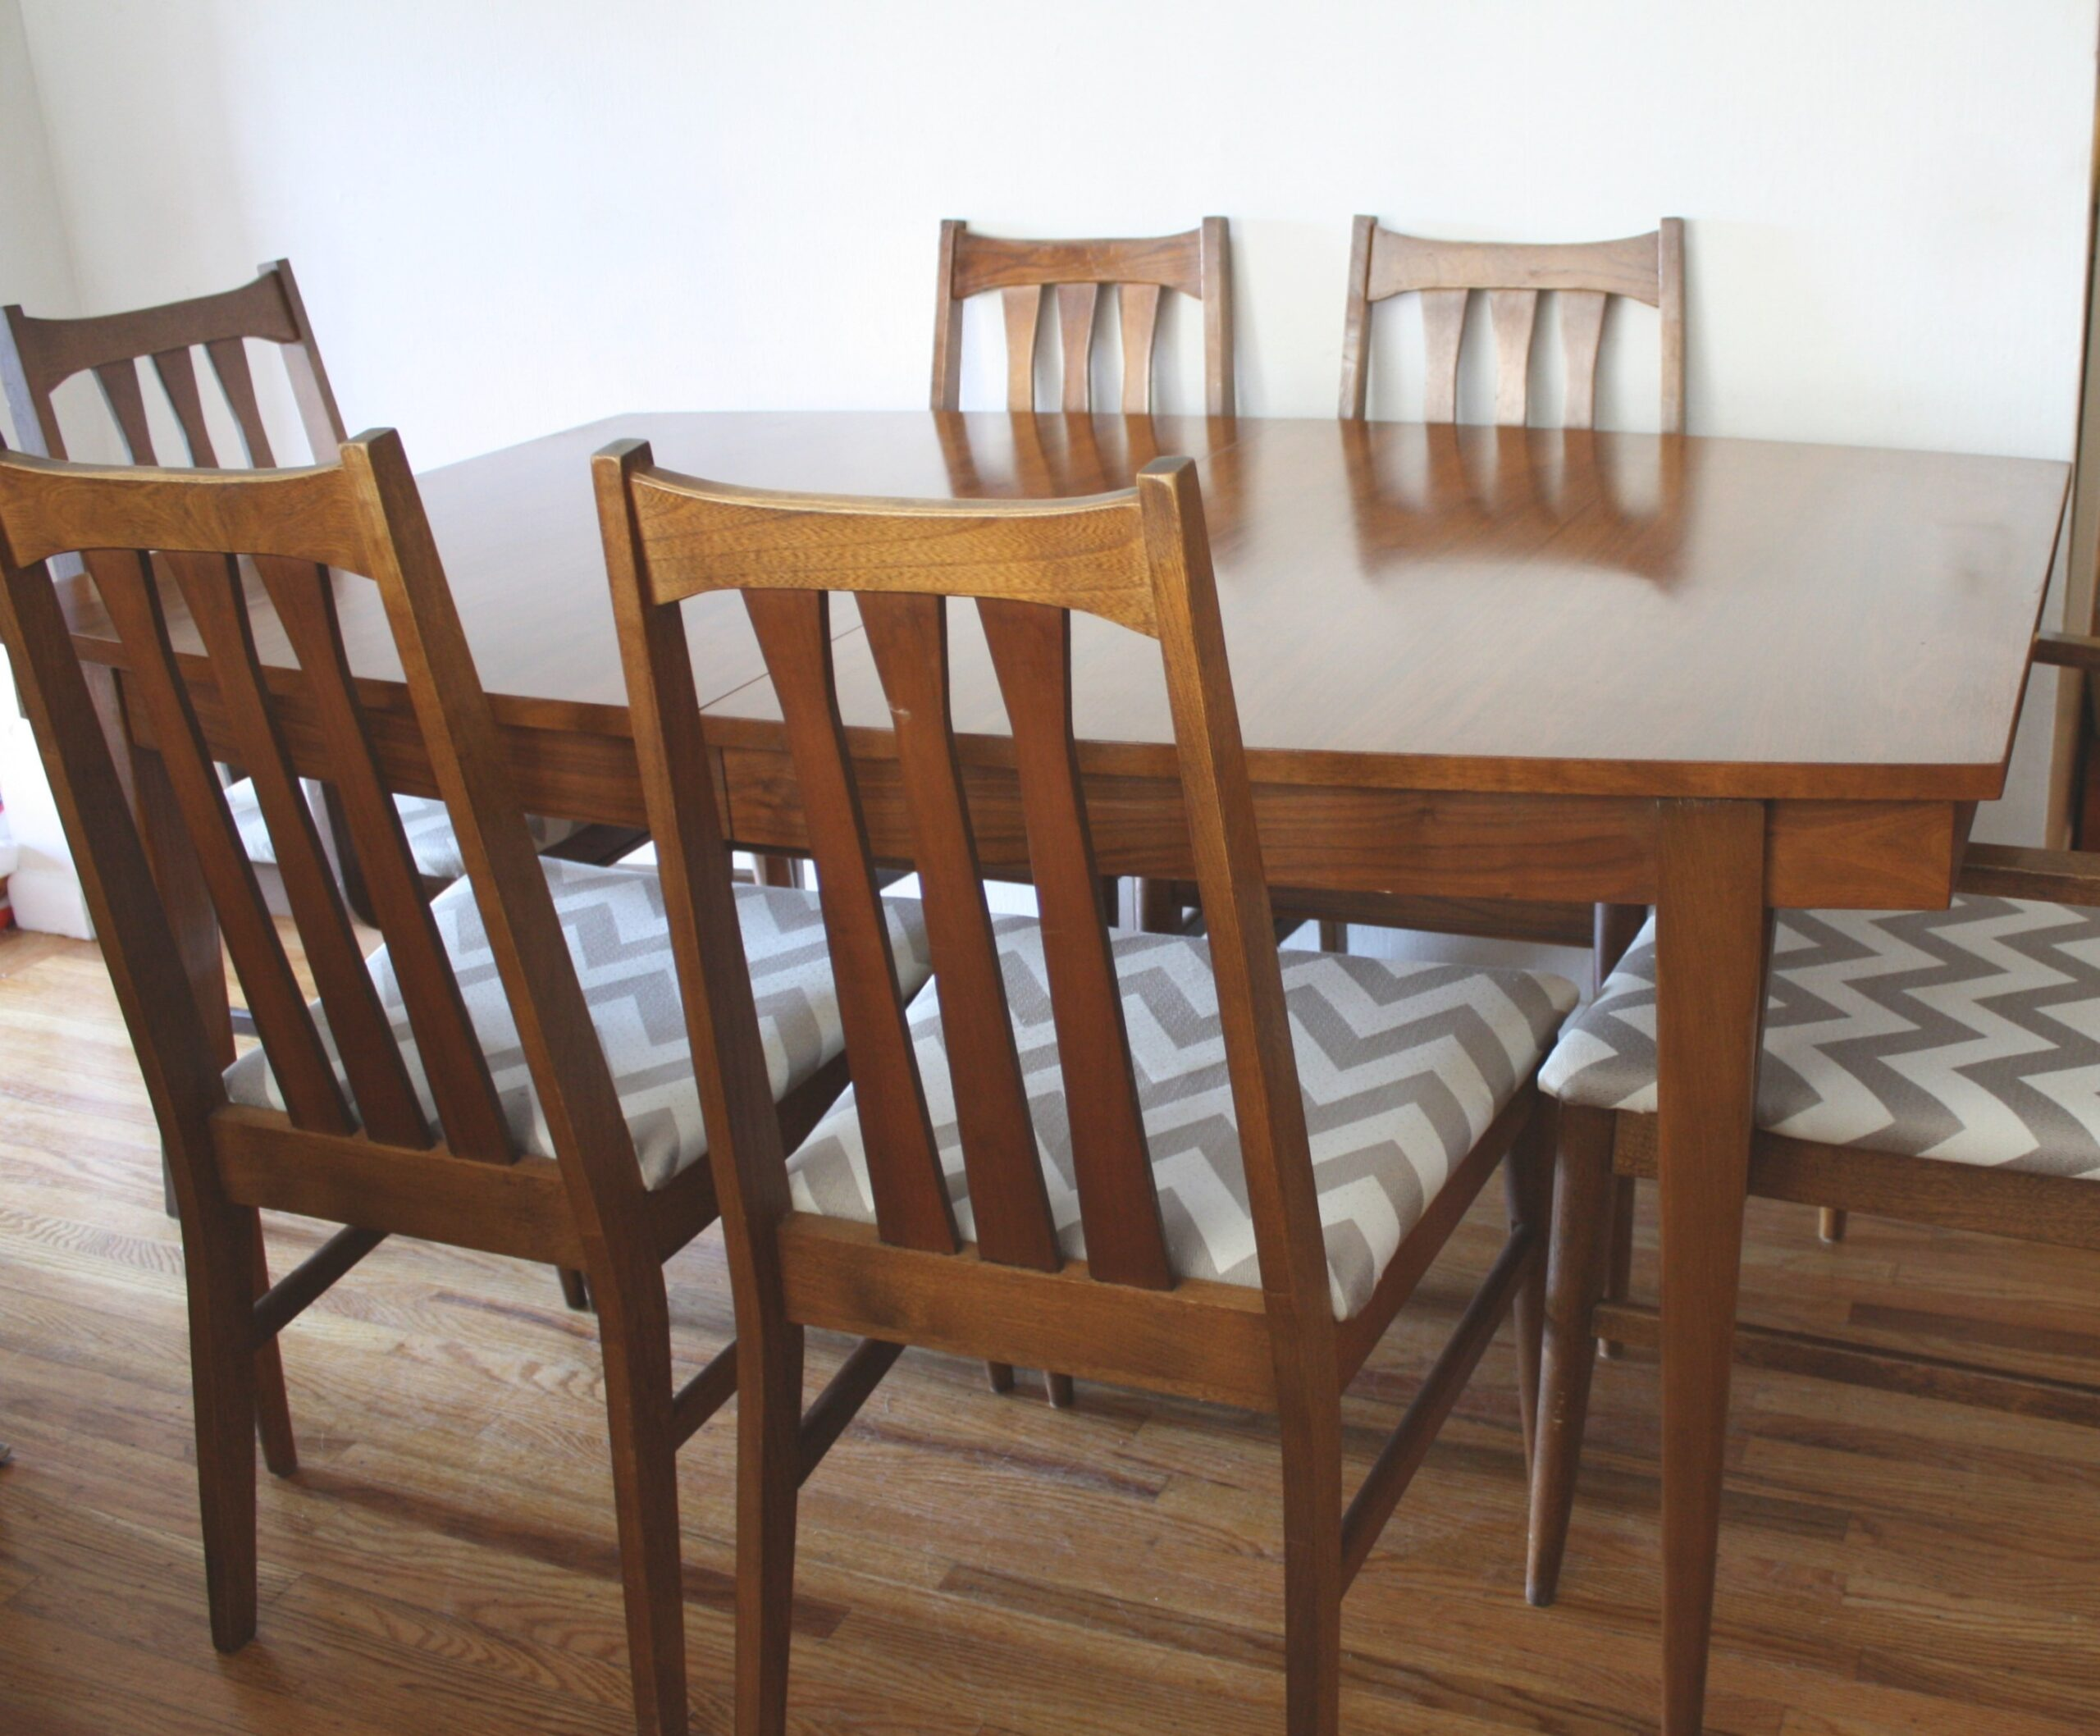 Mid Century Modern Dining Chair Sets | Picked Vintage in Mid Century Modern Dining Set